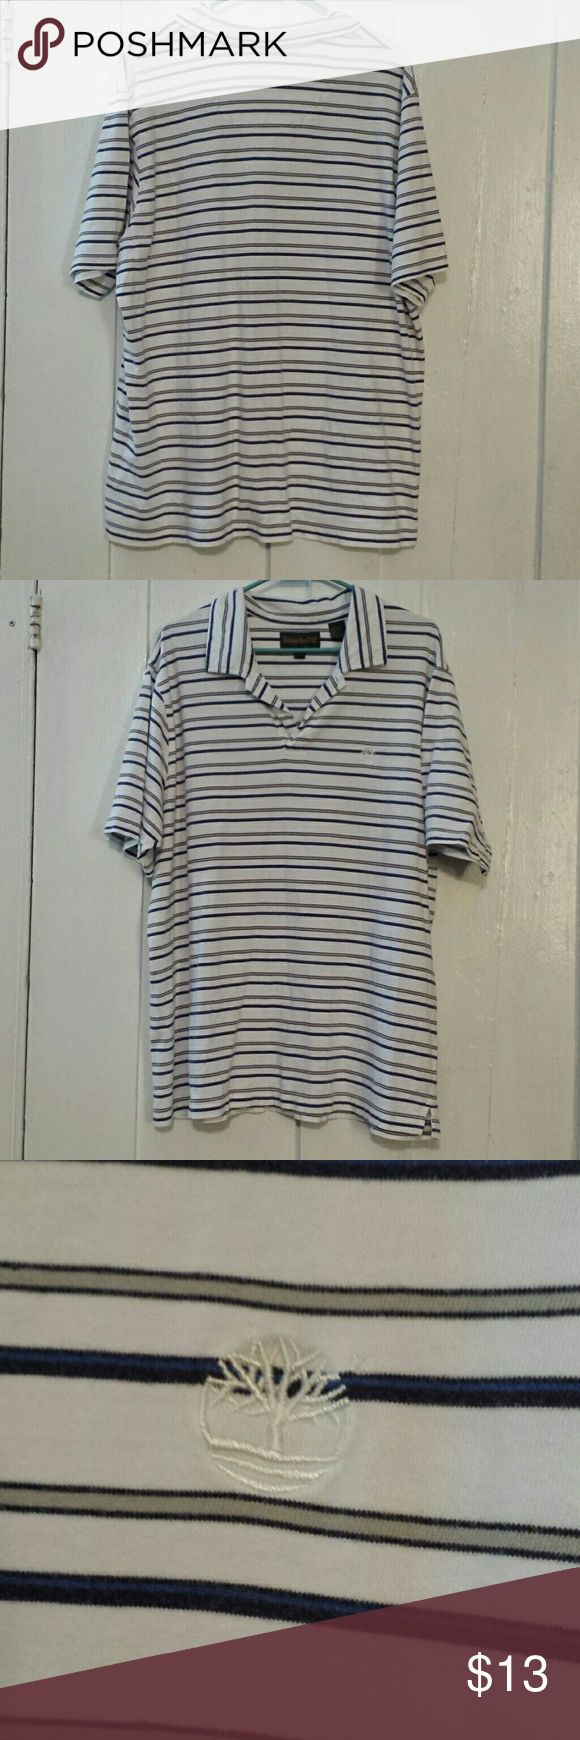 Timberland polo 1/4 length sleeves, shirt is striped in blues and tans and black. Great condition Timberland Shirts